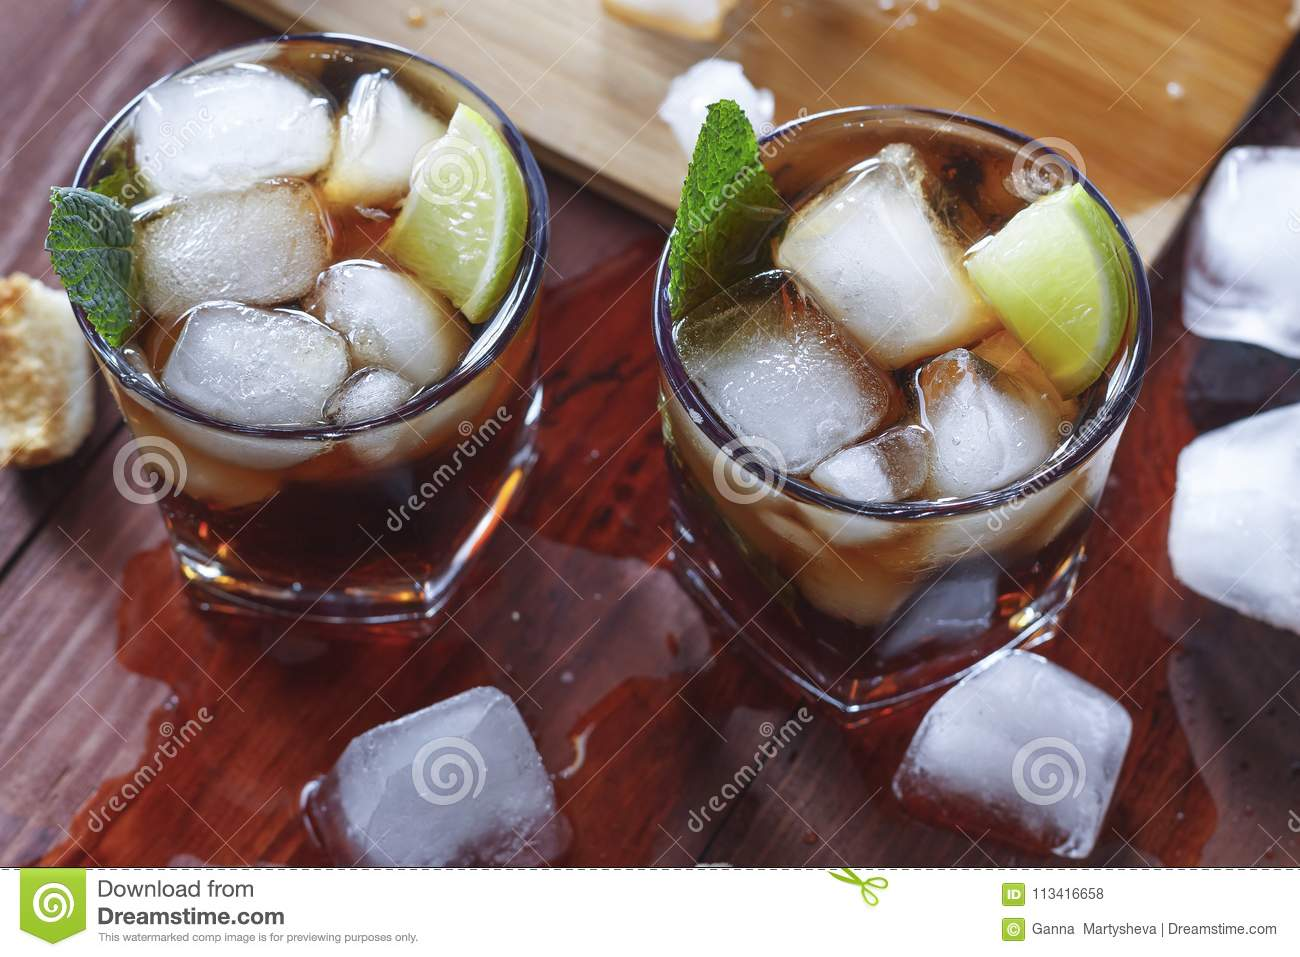 Rum, ice, party, lime, alcohol, drink, beverage, ice, rum, glass